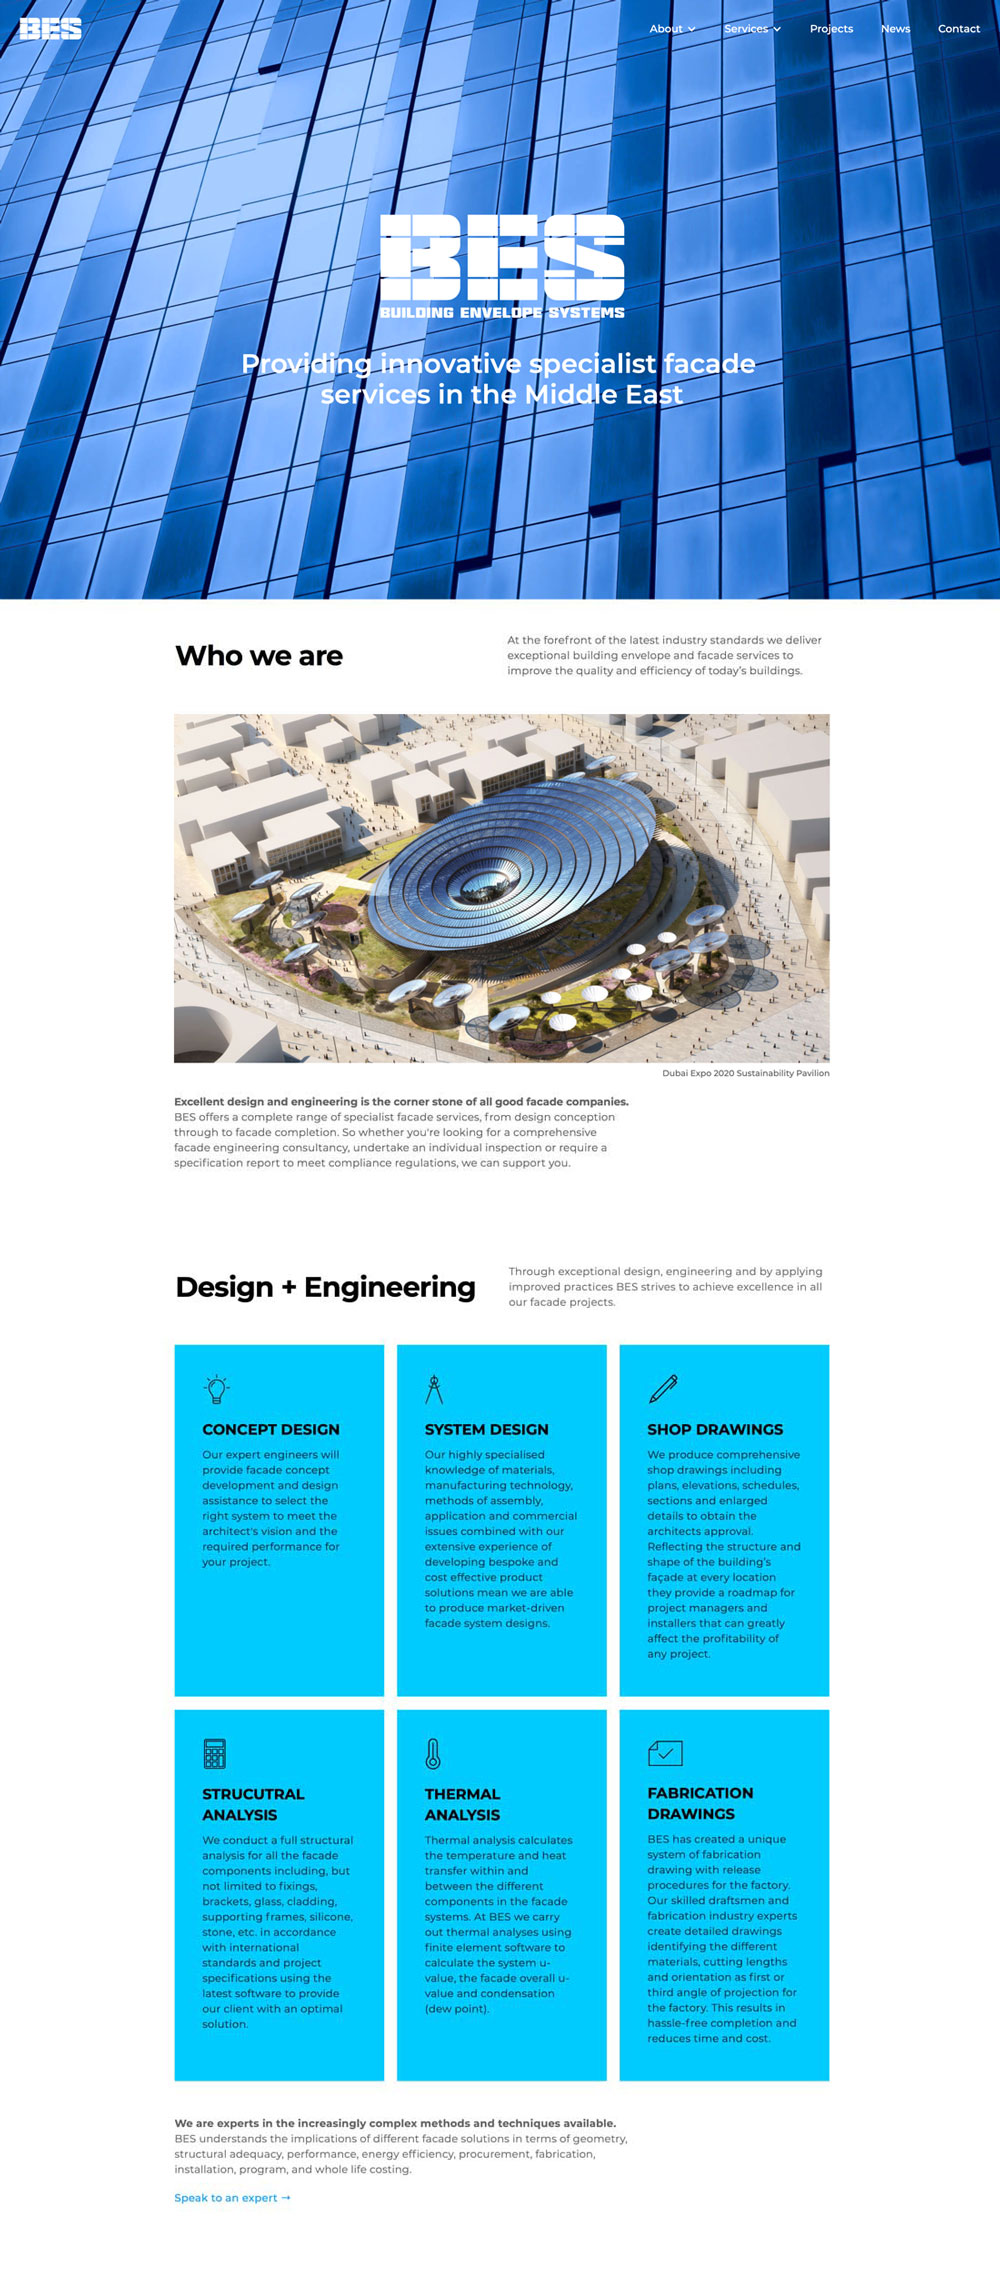 BES website redesign using Webflow